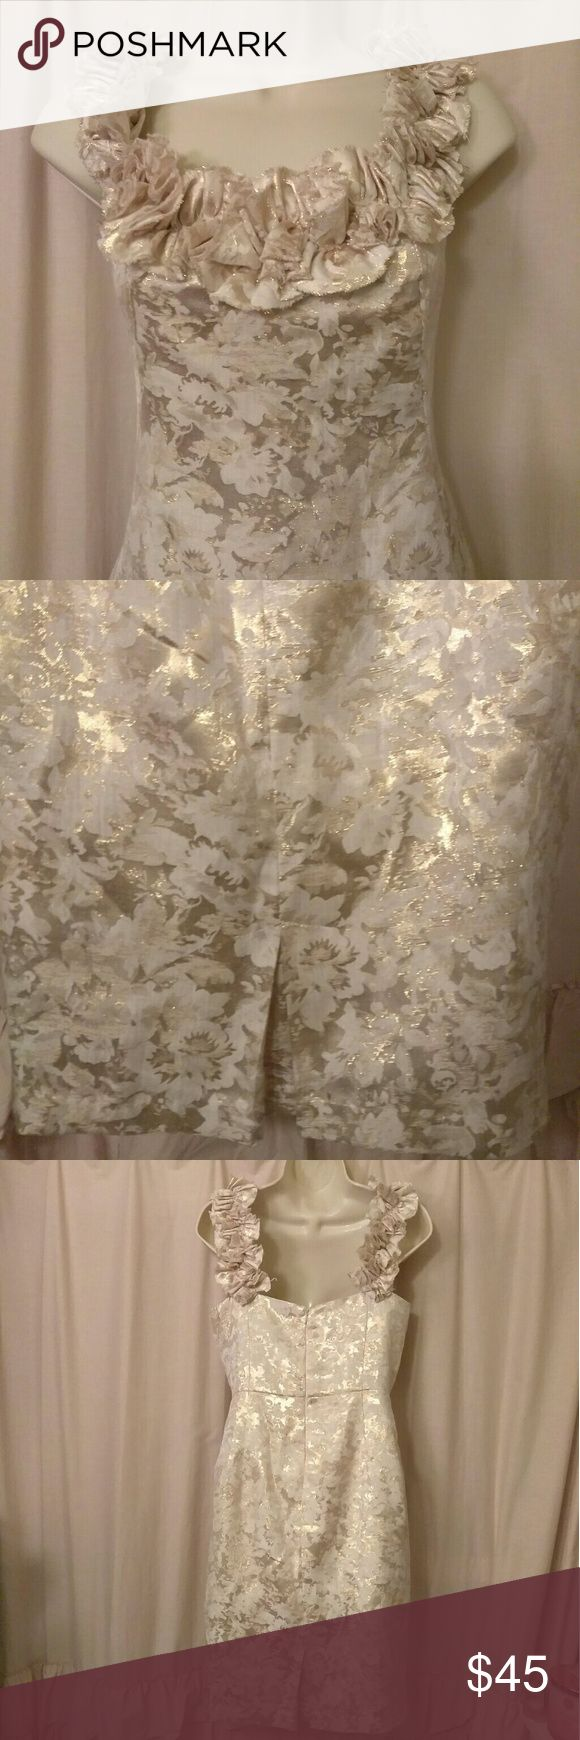 Maggy L Gold Brocade Dress Excellent condition Maggy L gold floral brocade dress with ruffle neckline and straps, great for holiday parties Maggy London Dresses